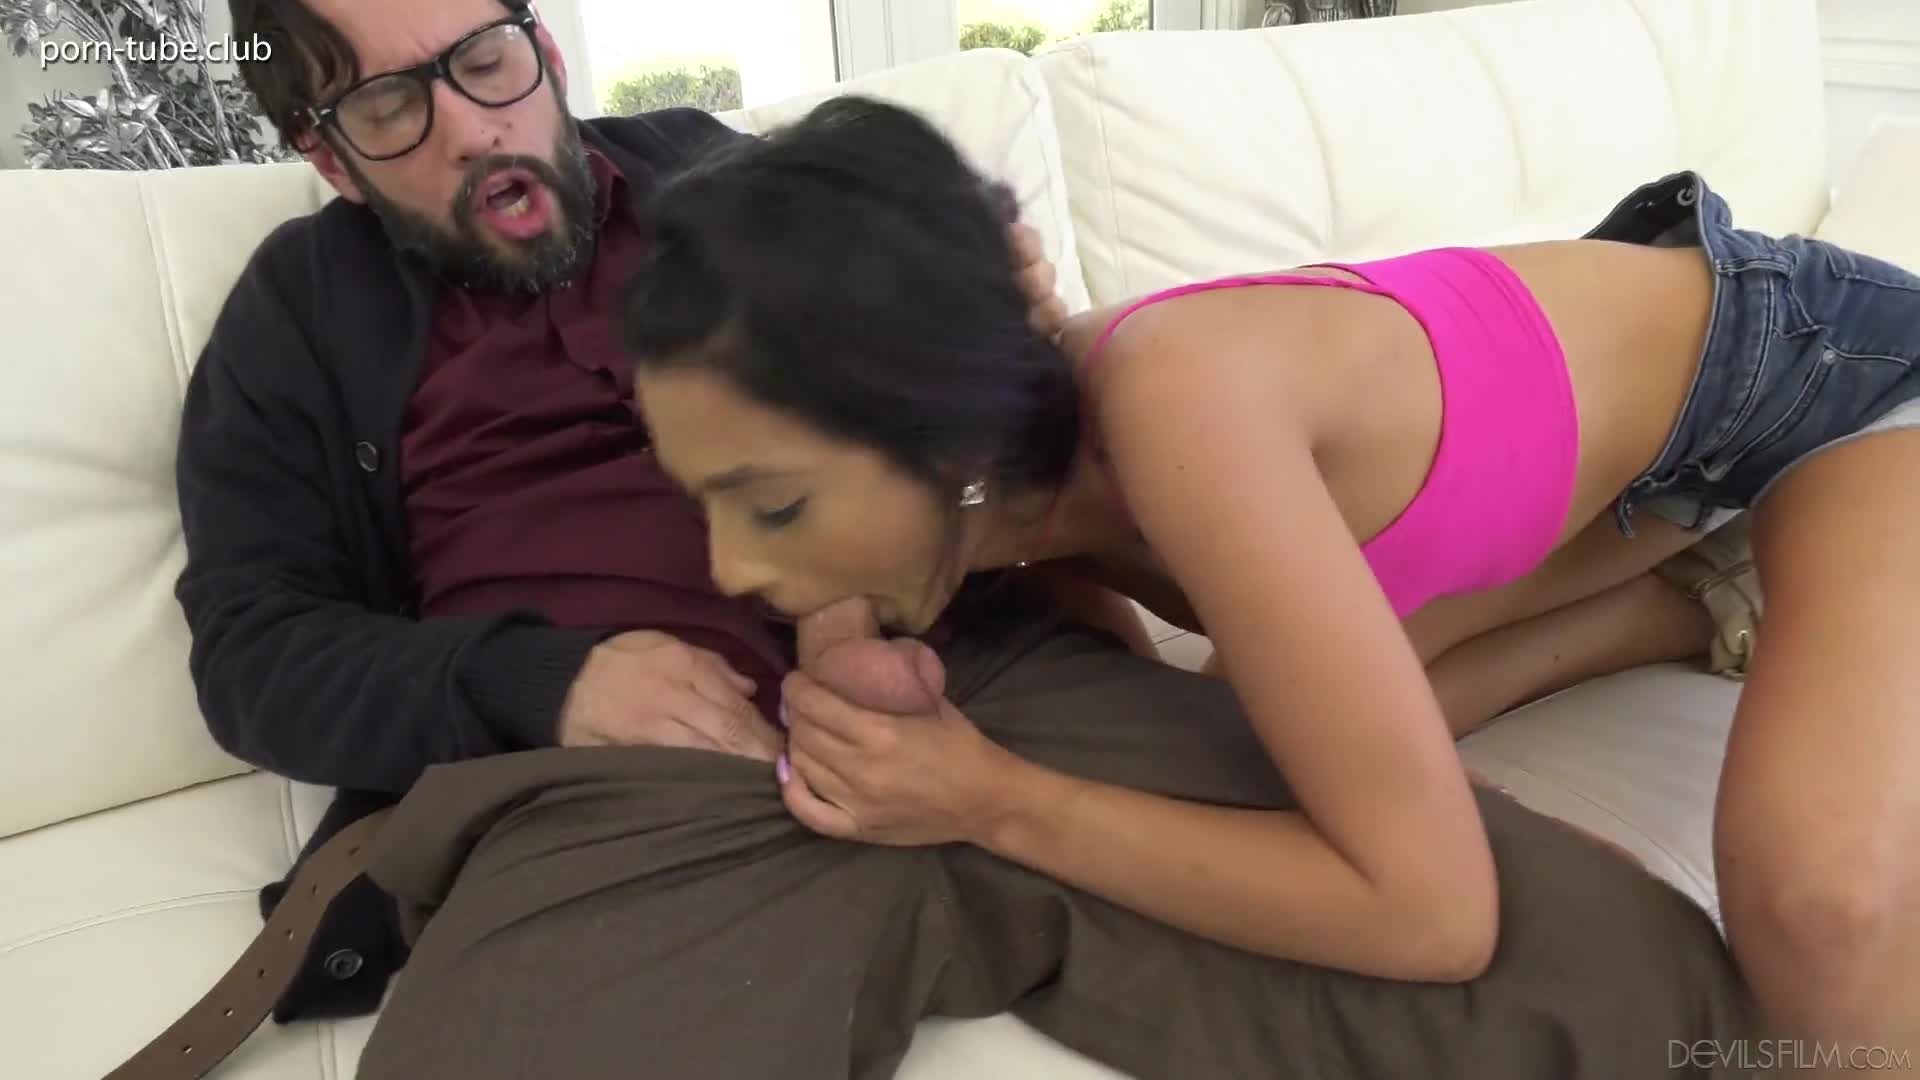 DevilsFilm 19.10.24 Jaye Summers Starving For His Cock